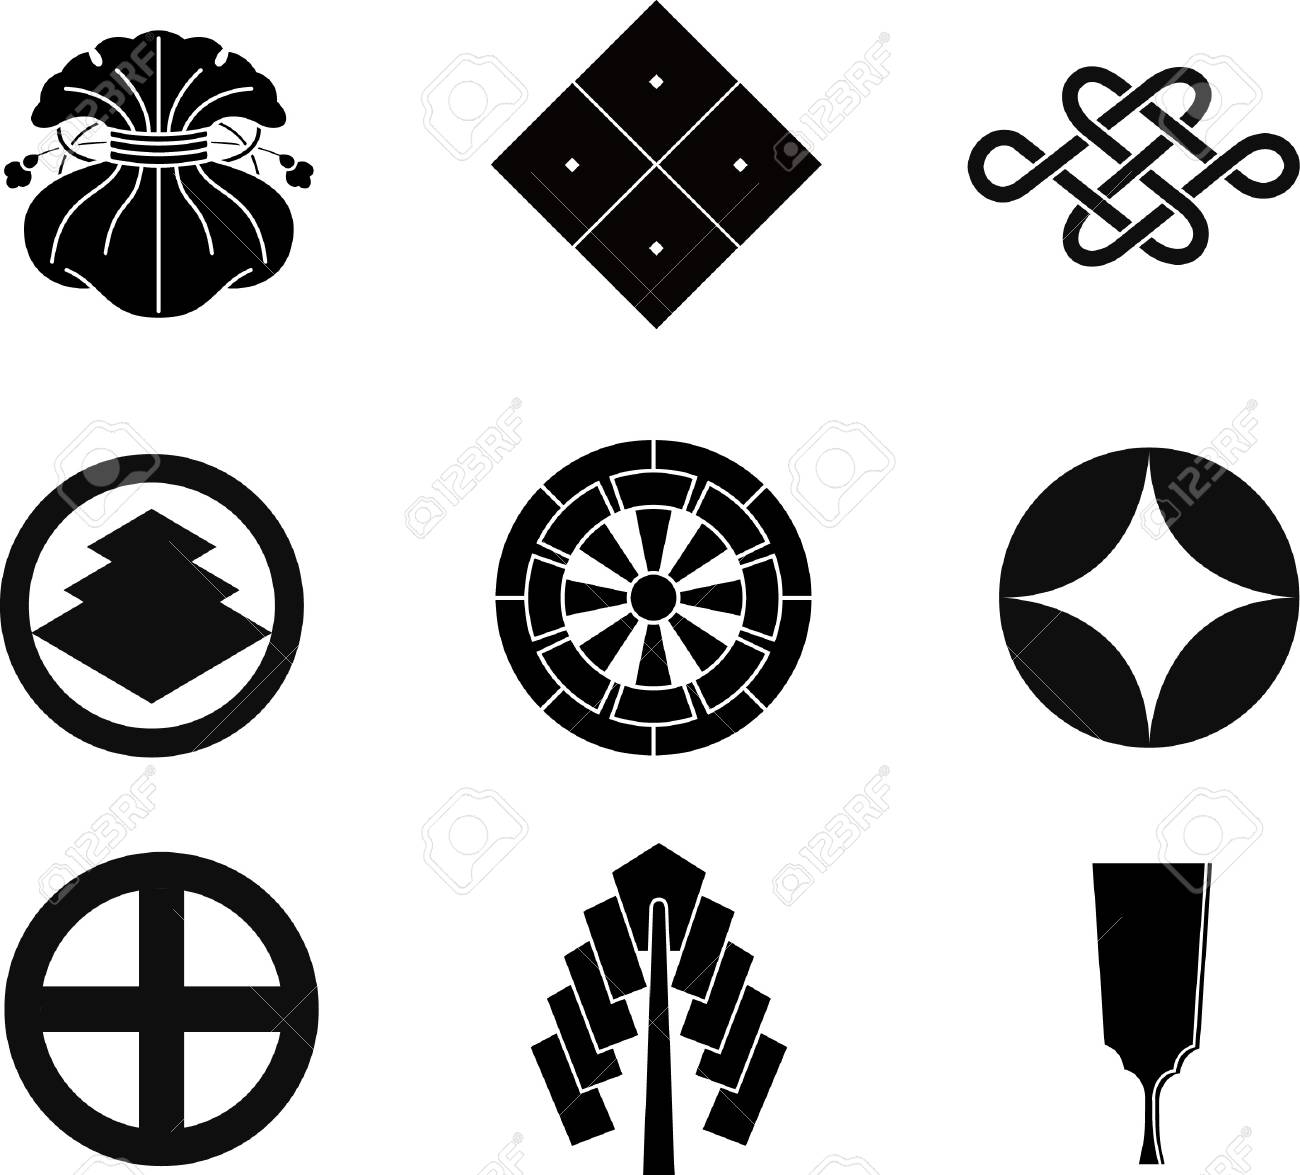 Japanese family crests royalty free cliparts vectors and stock japanese family crests stock vector 10458203 biocorpaavc Gallery